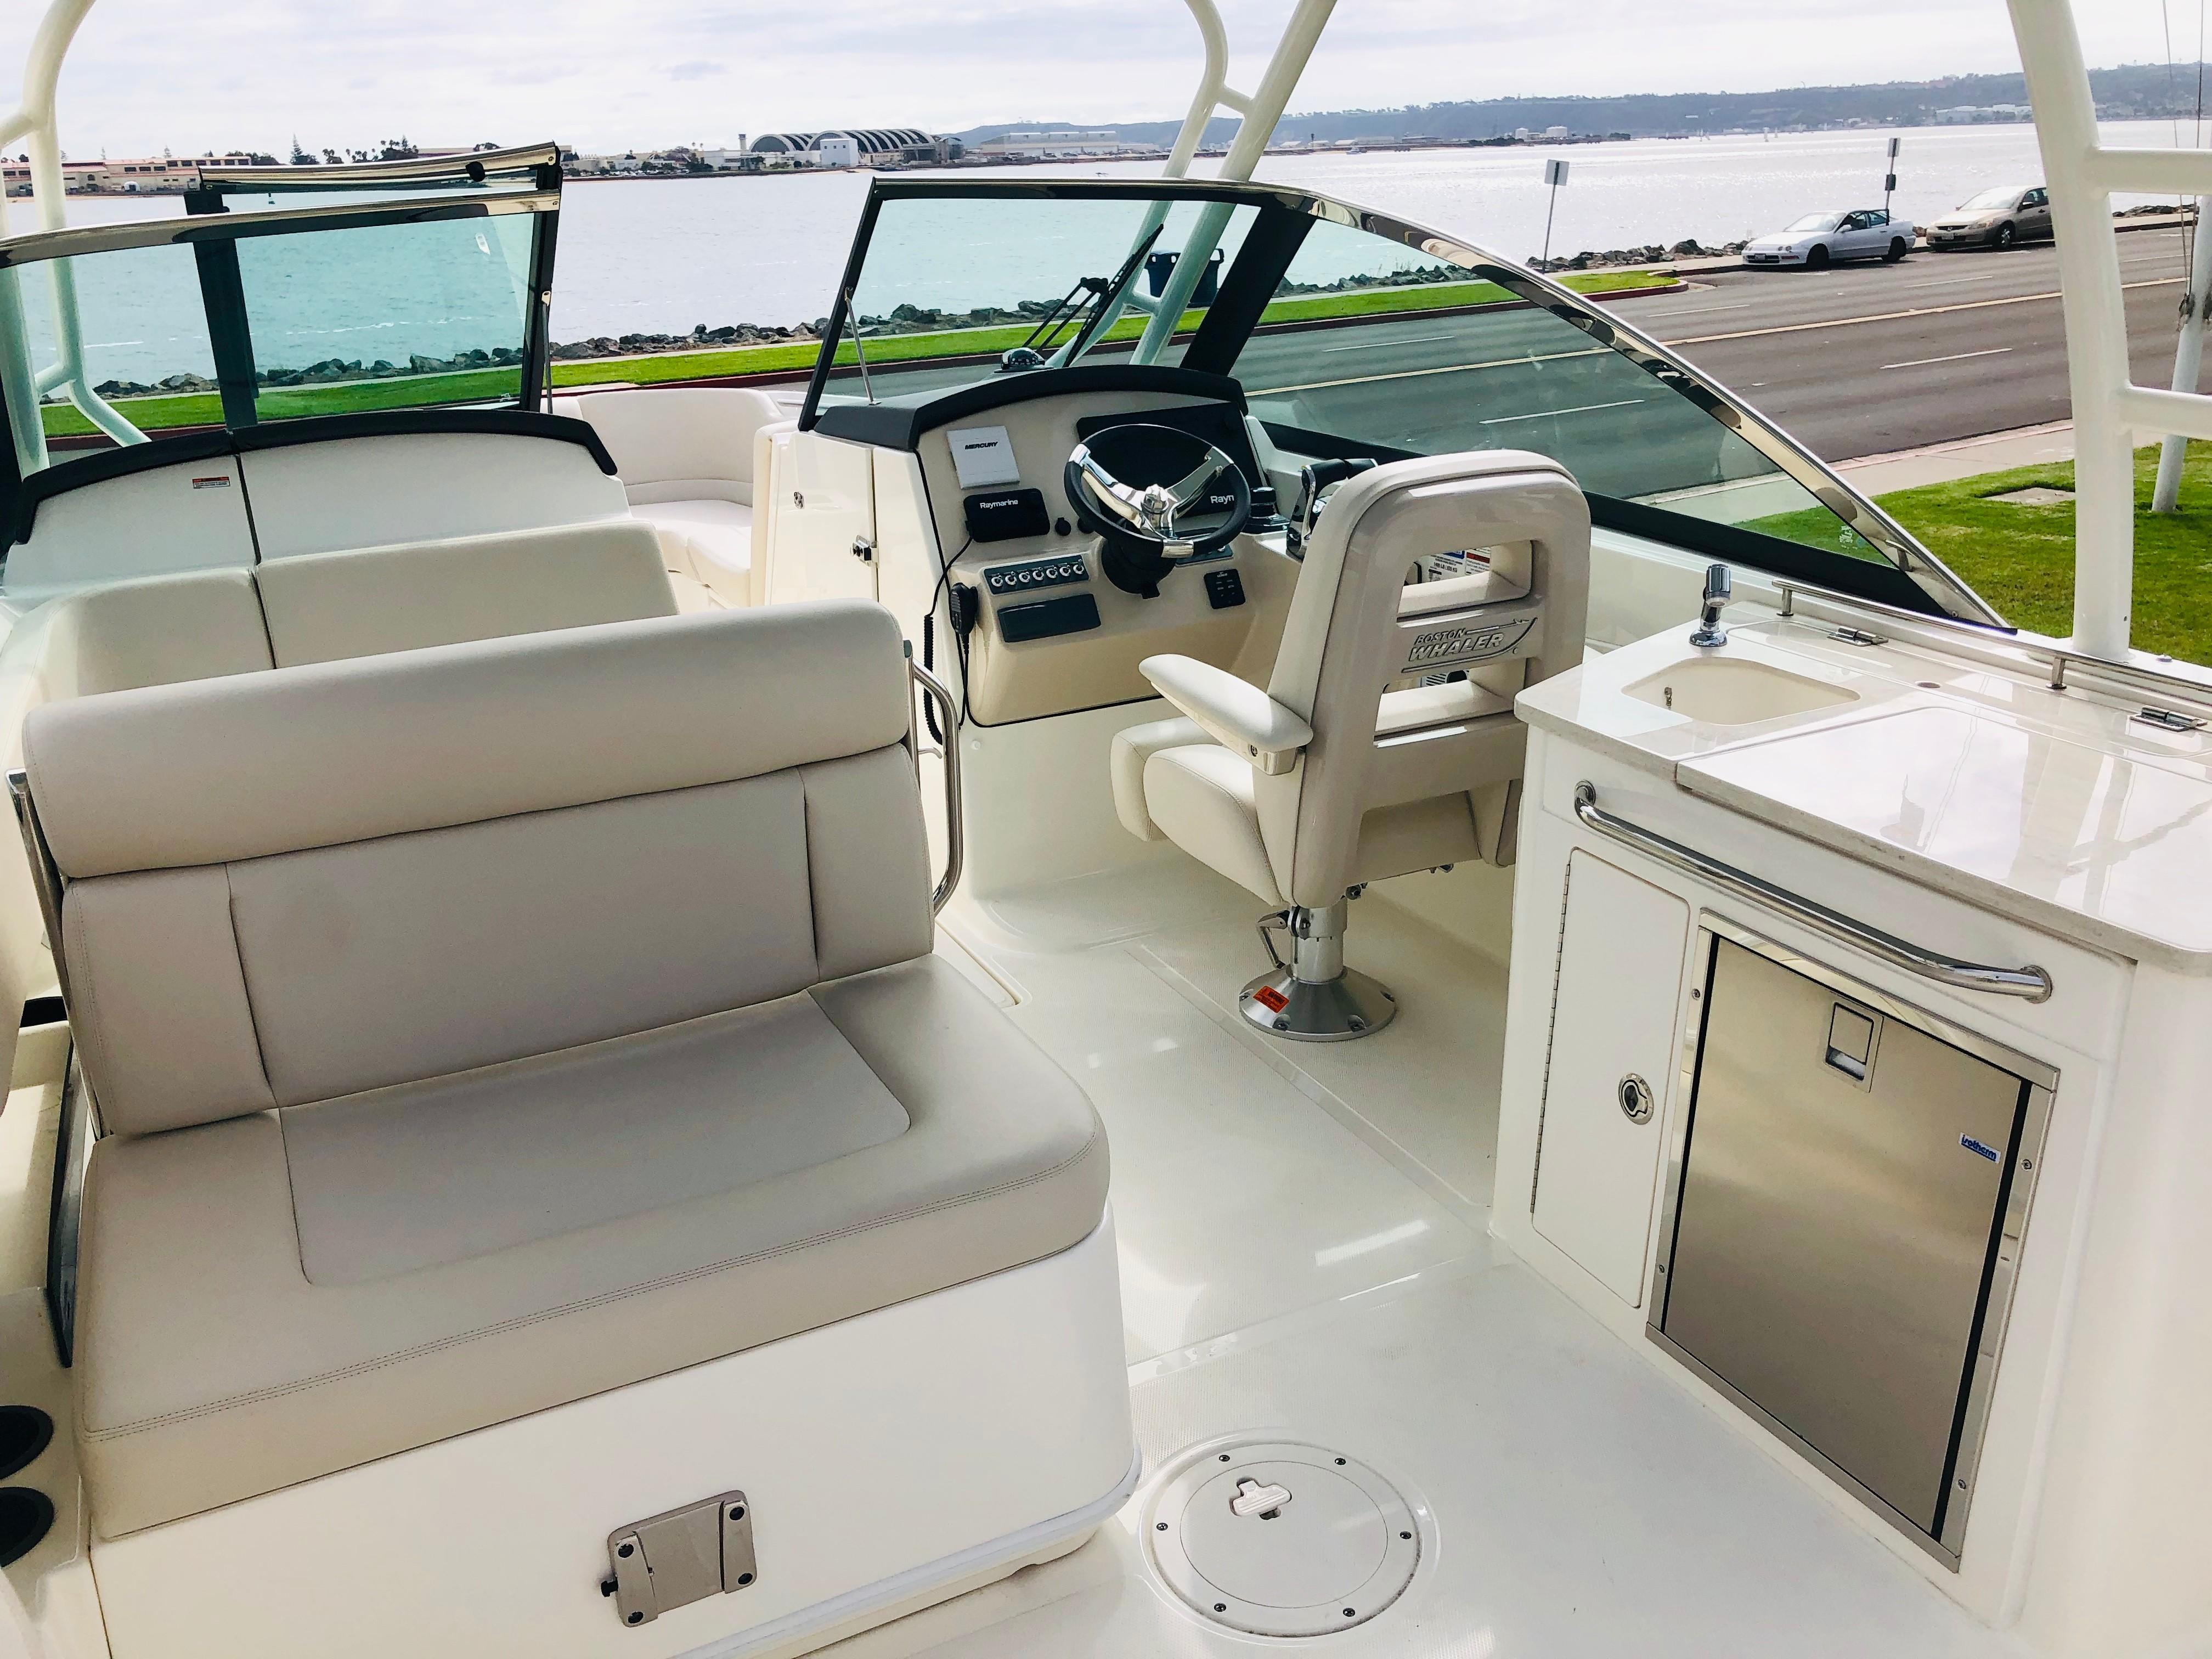 2019 Boston Whaler 270 Vantage #TB2431RM inventory image at Sun Country Coastal in San Diego